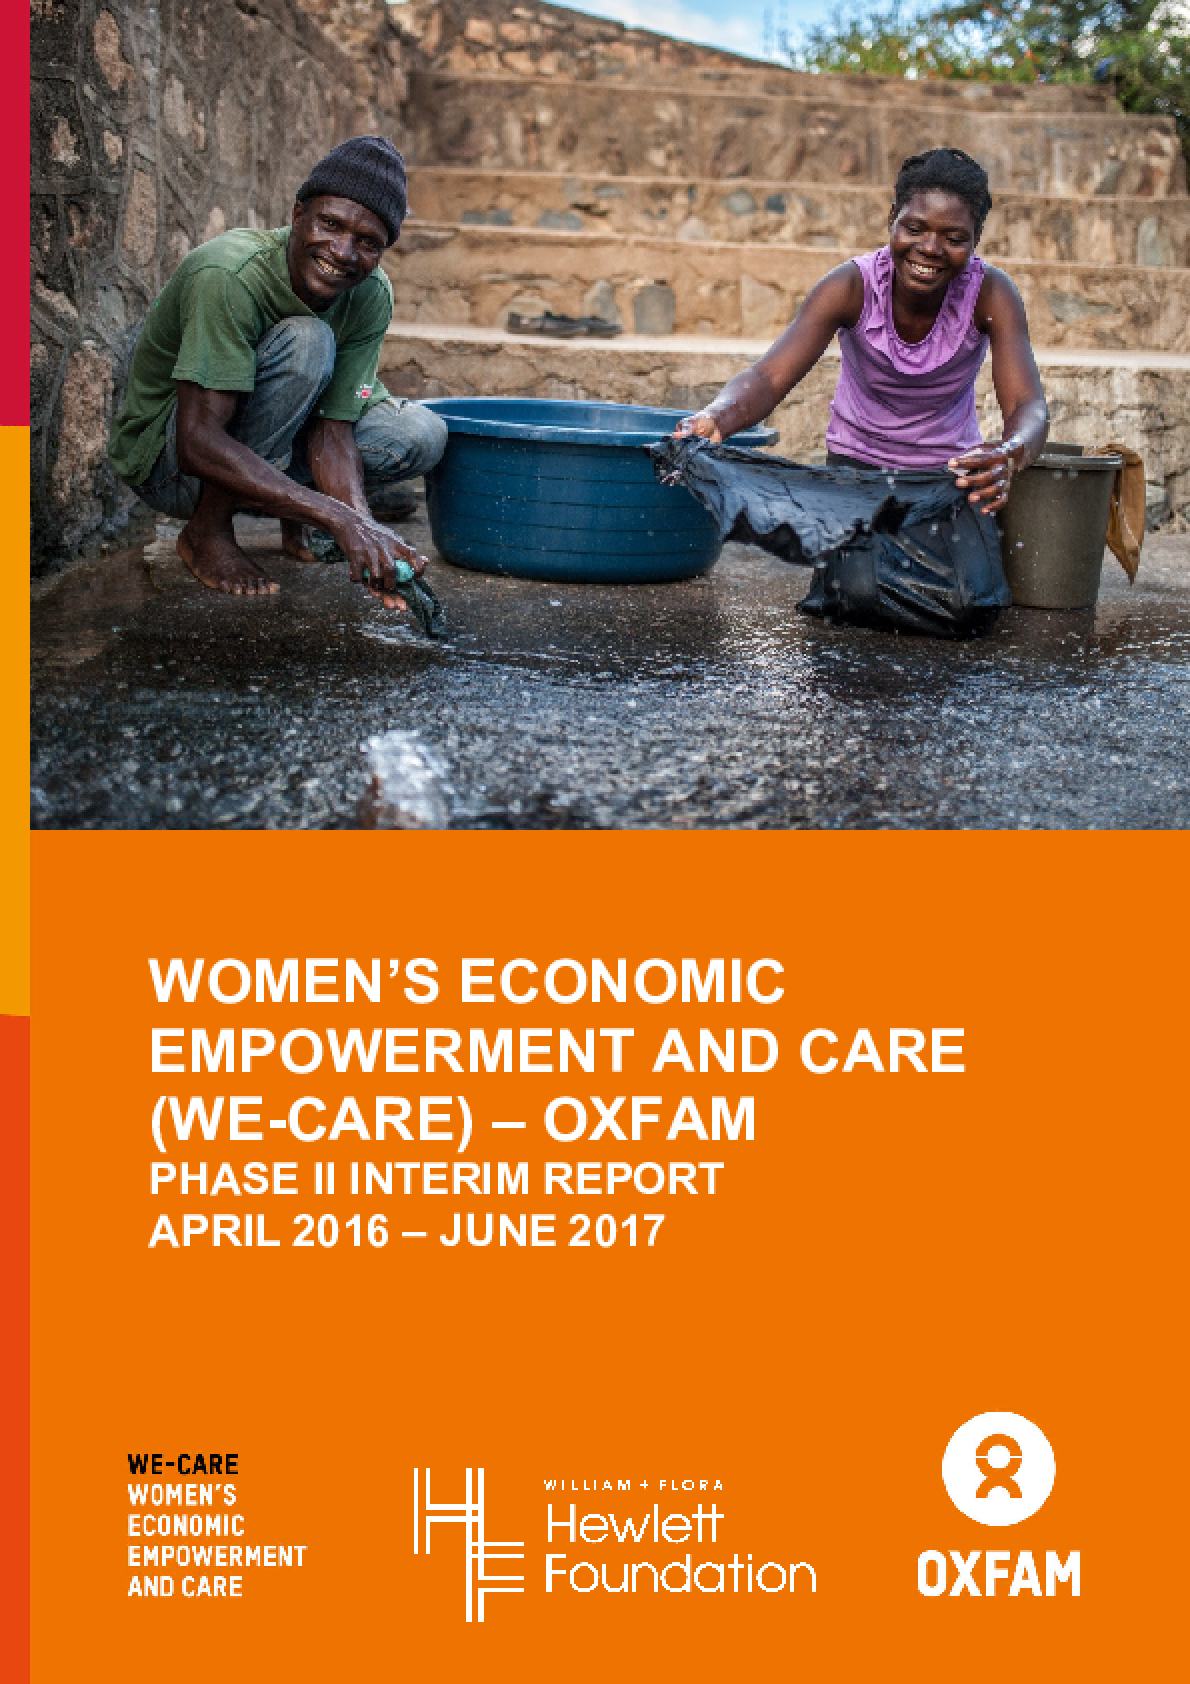 Women's Economic Empowerment and Care (WE-Care) - Oxfam: Phase II Interim Report